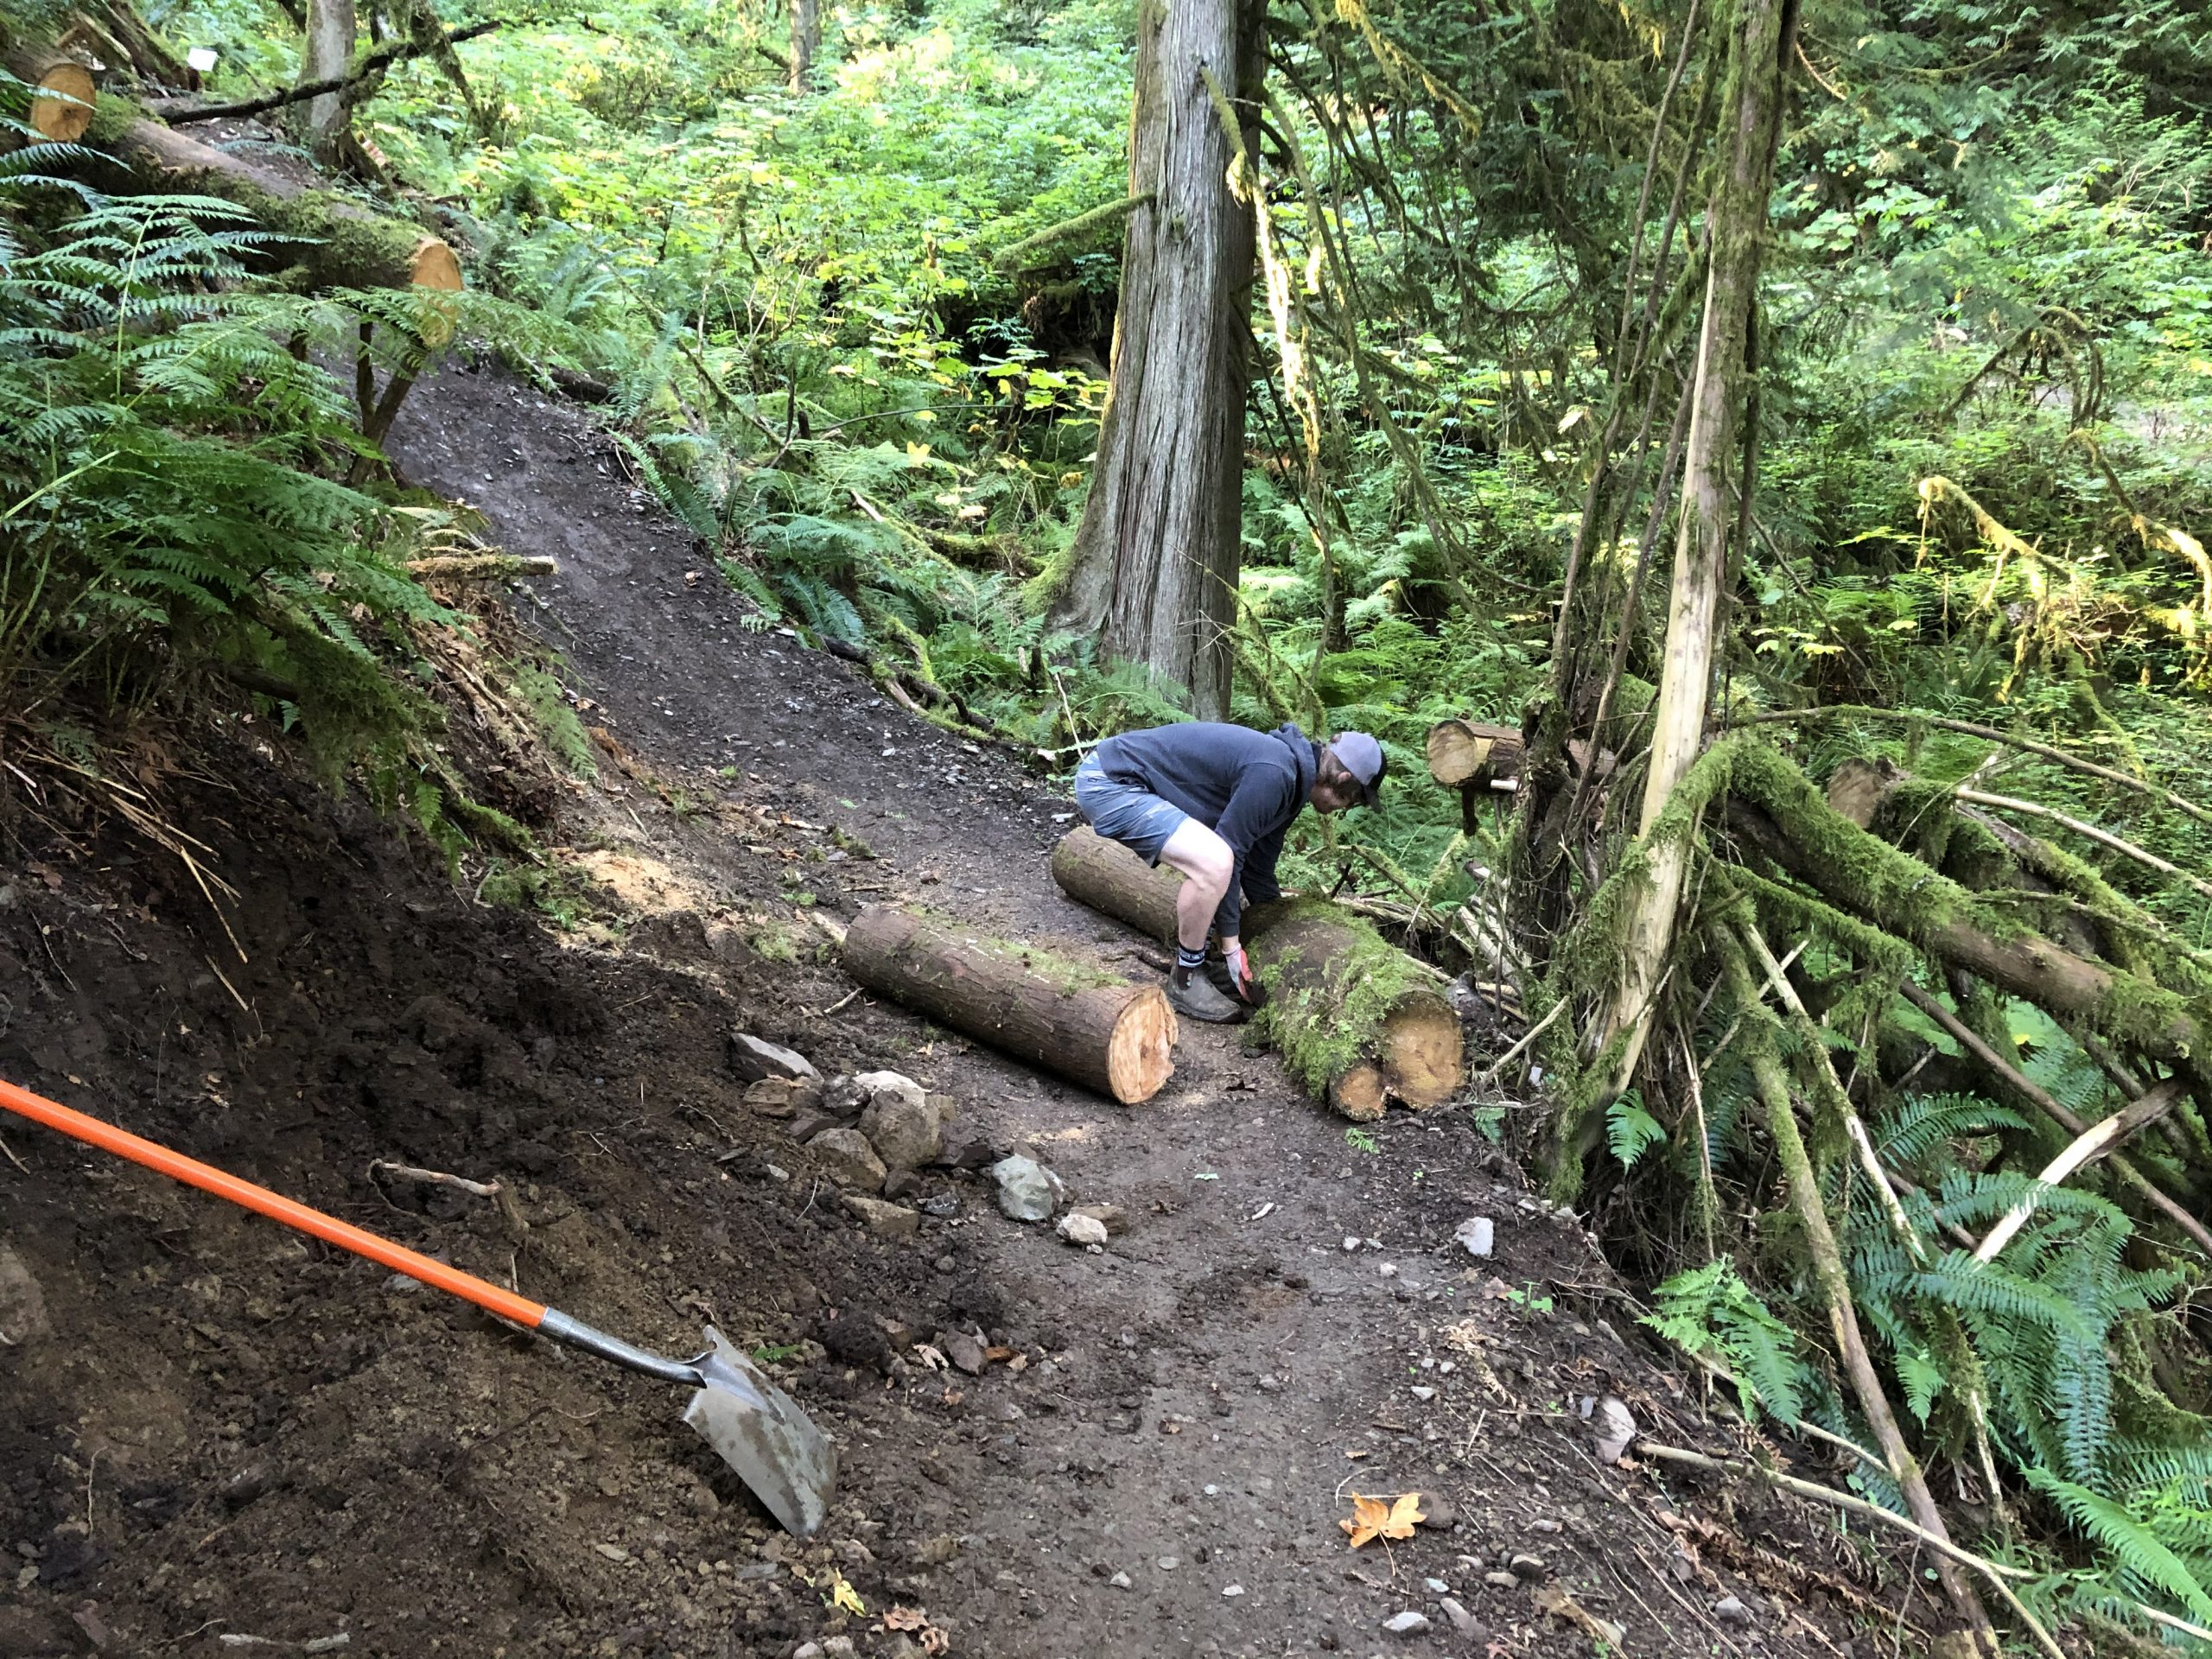 An off camber corner on a forested trail that needs a berm built